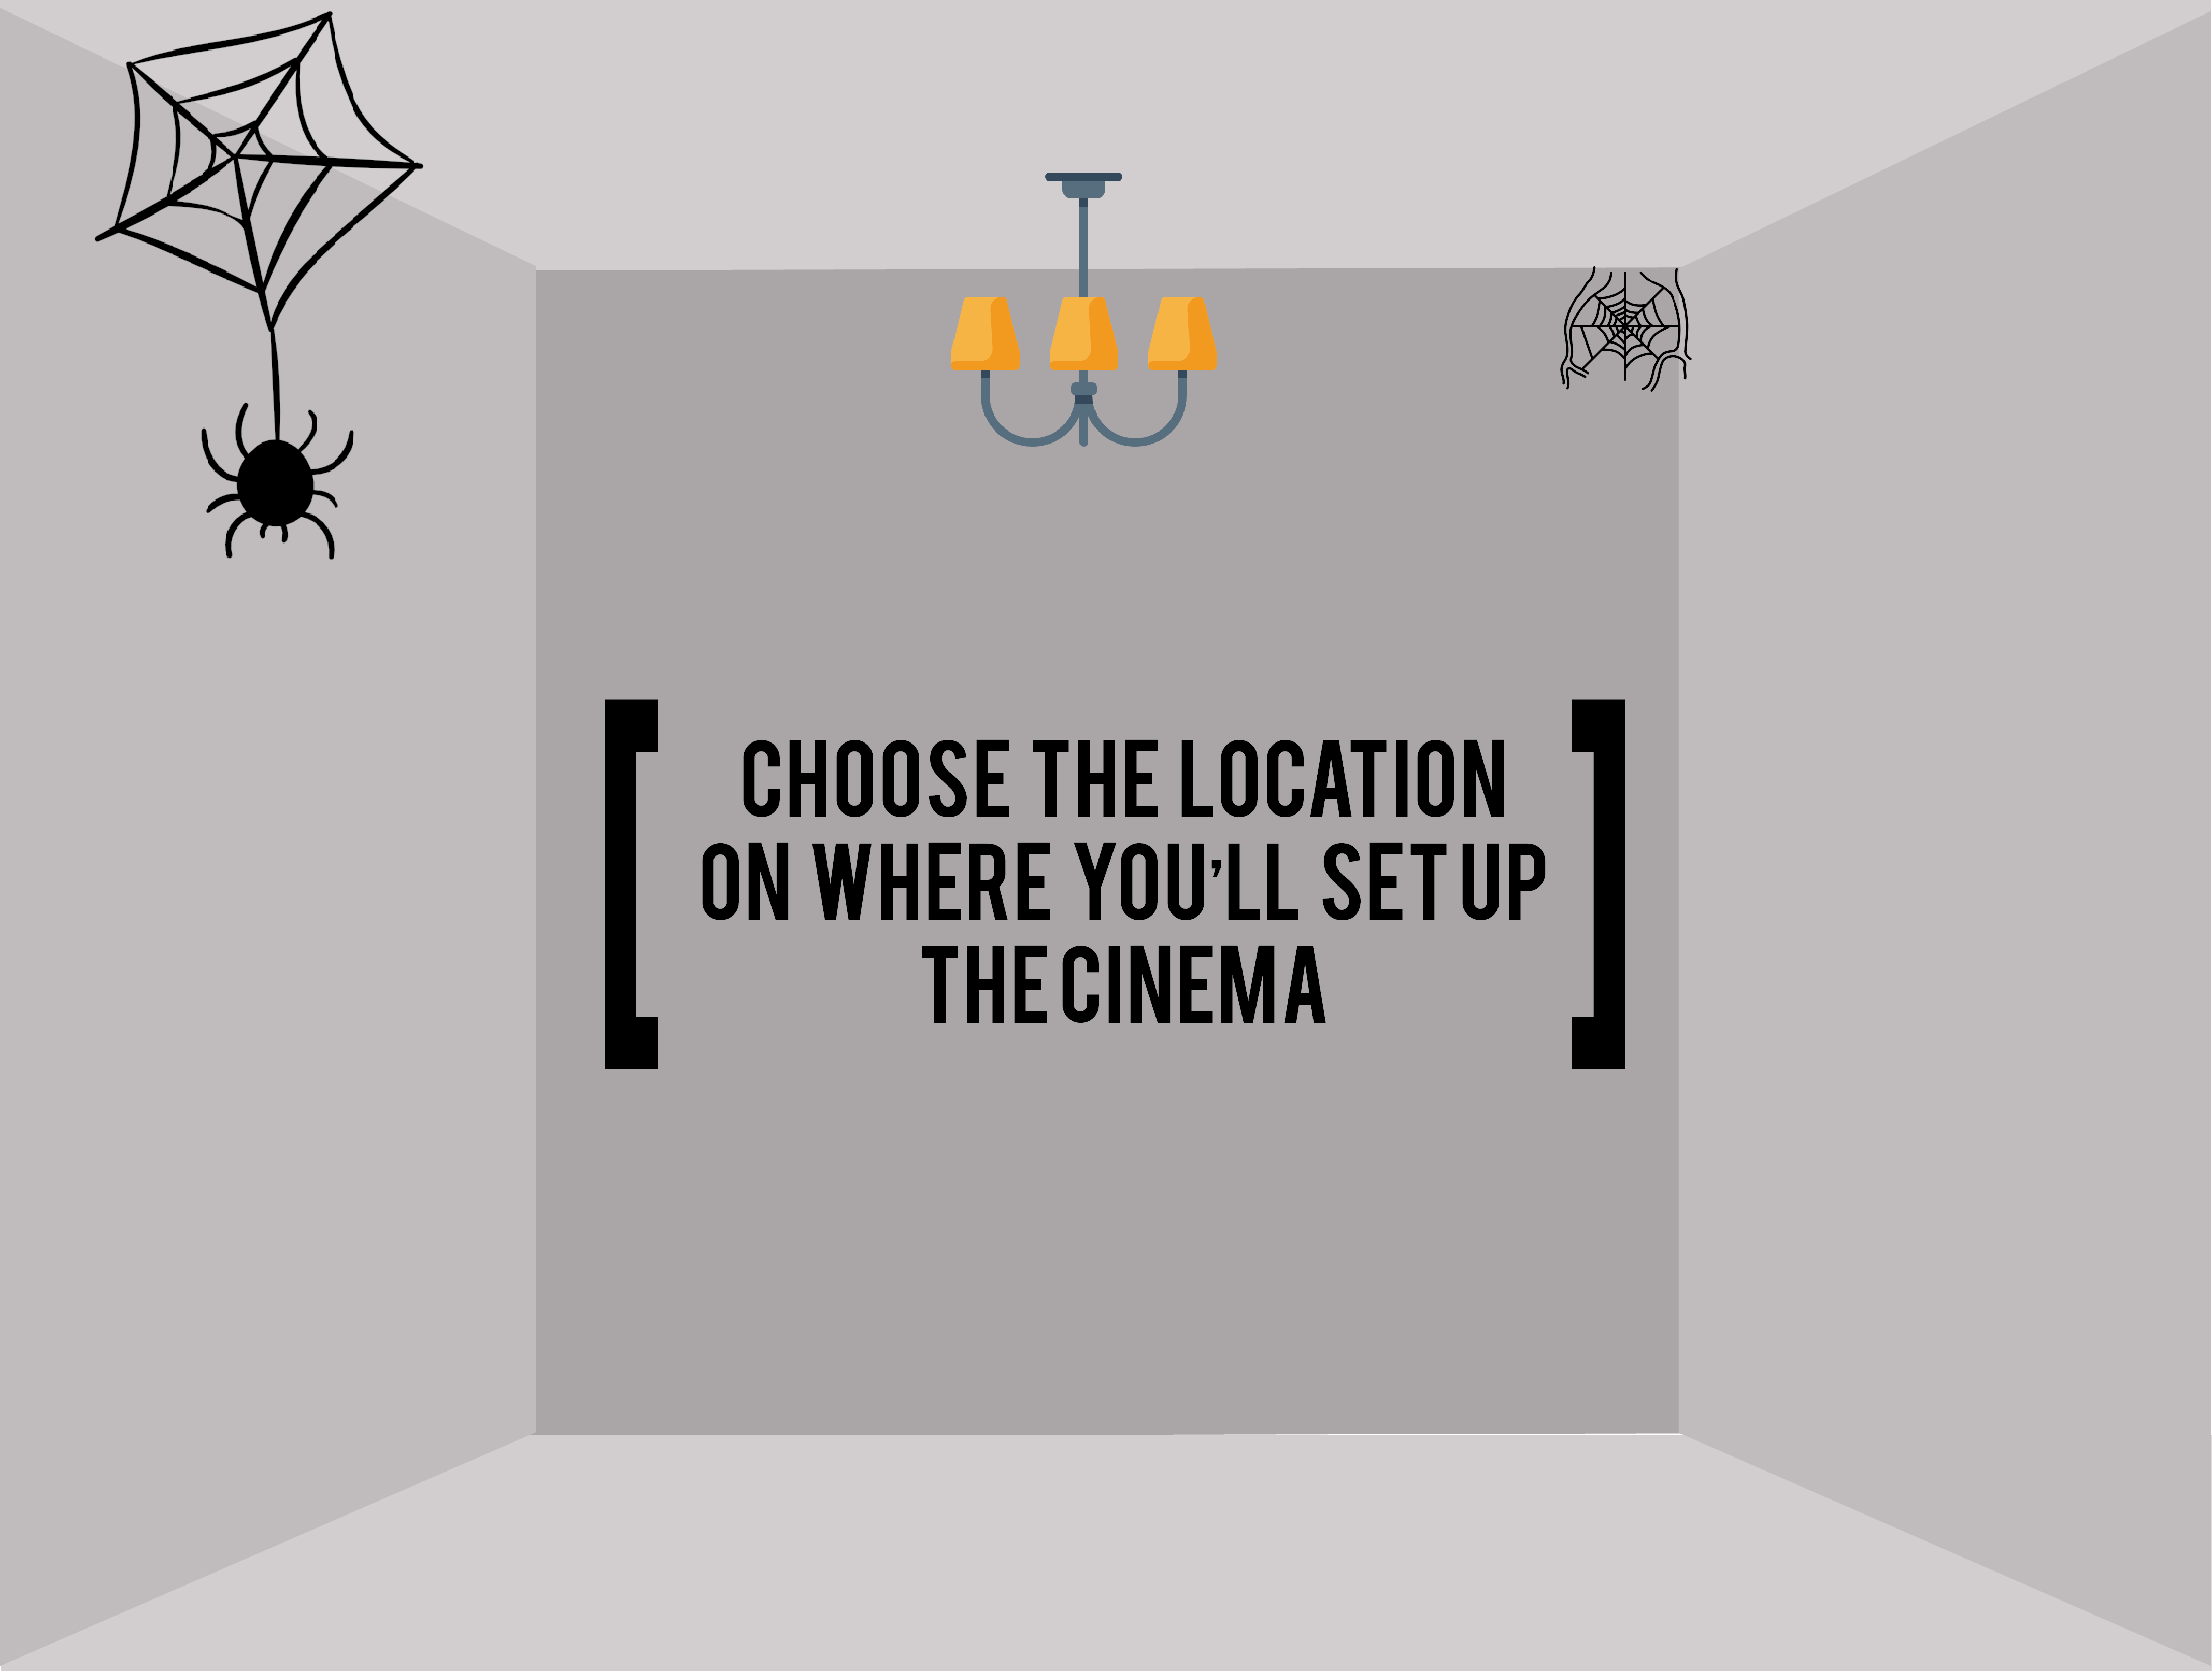 location on where you'll set up the cinema